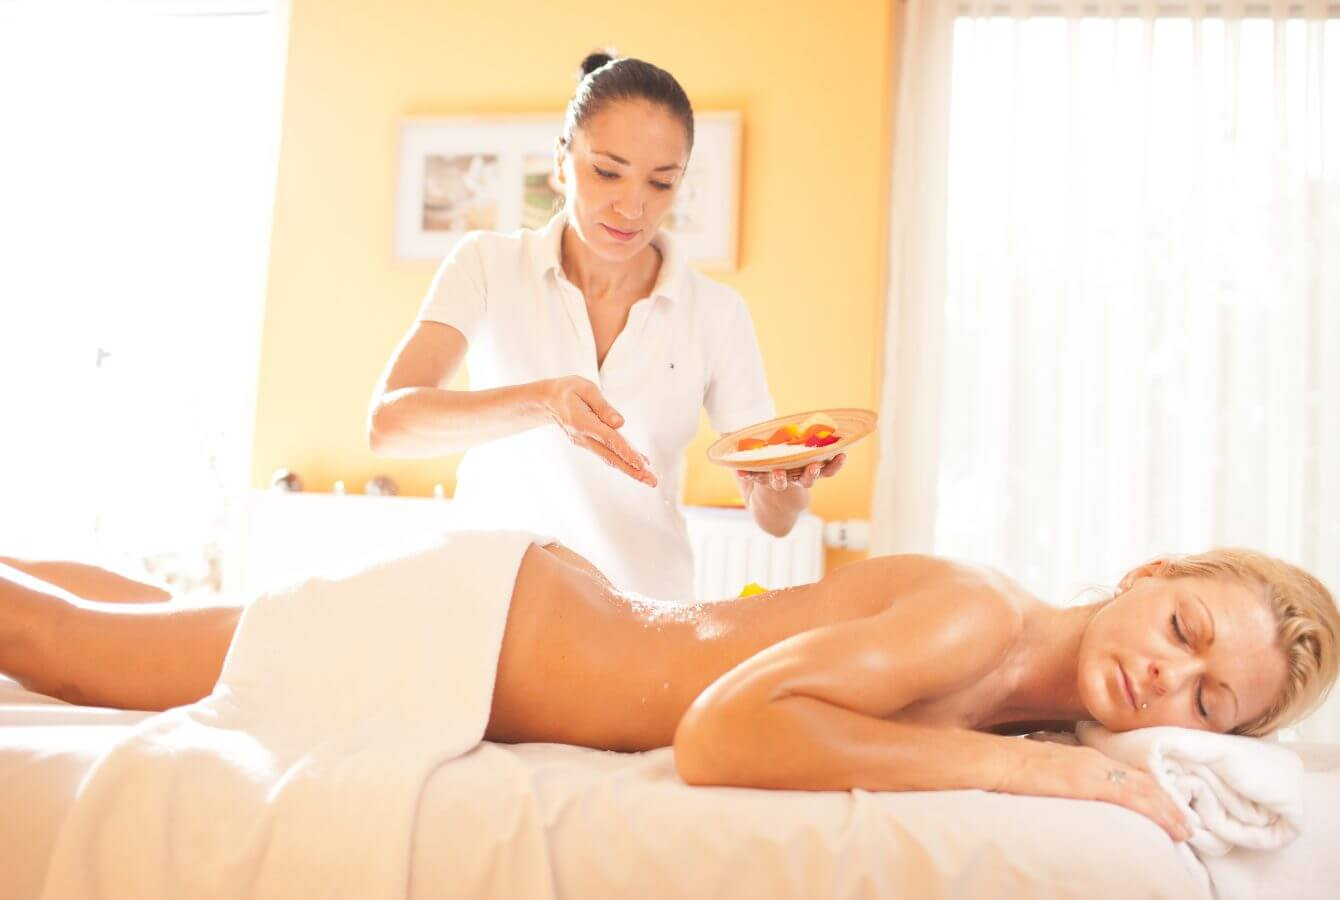 Massage, Peeling, Wellness